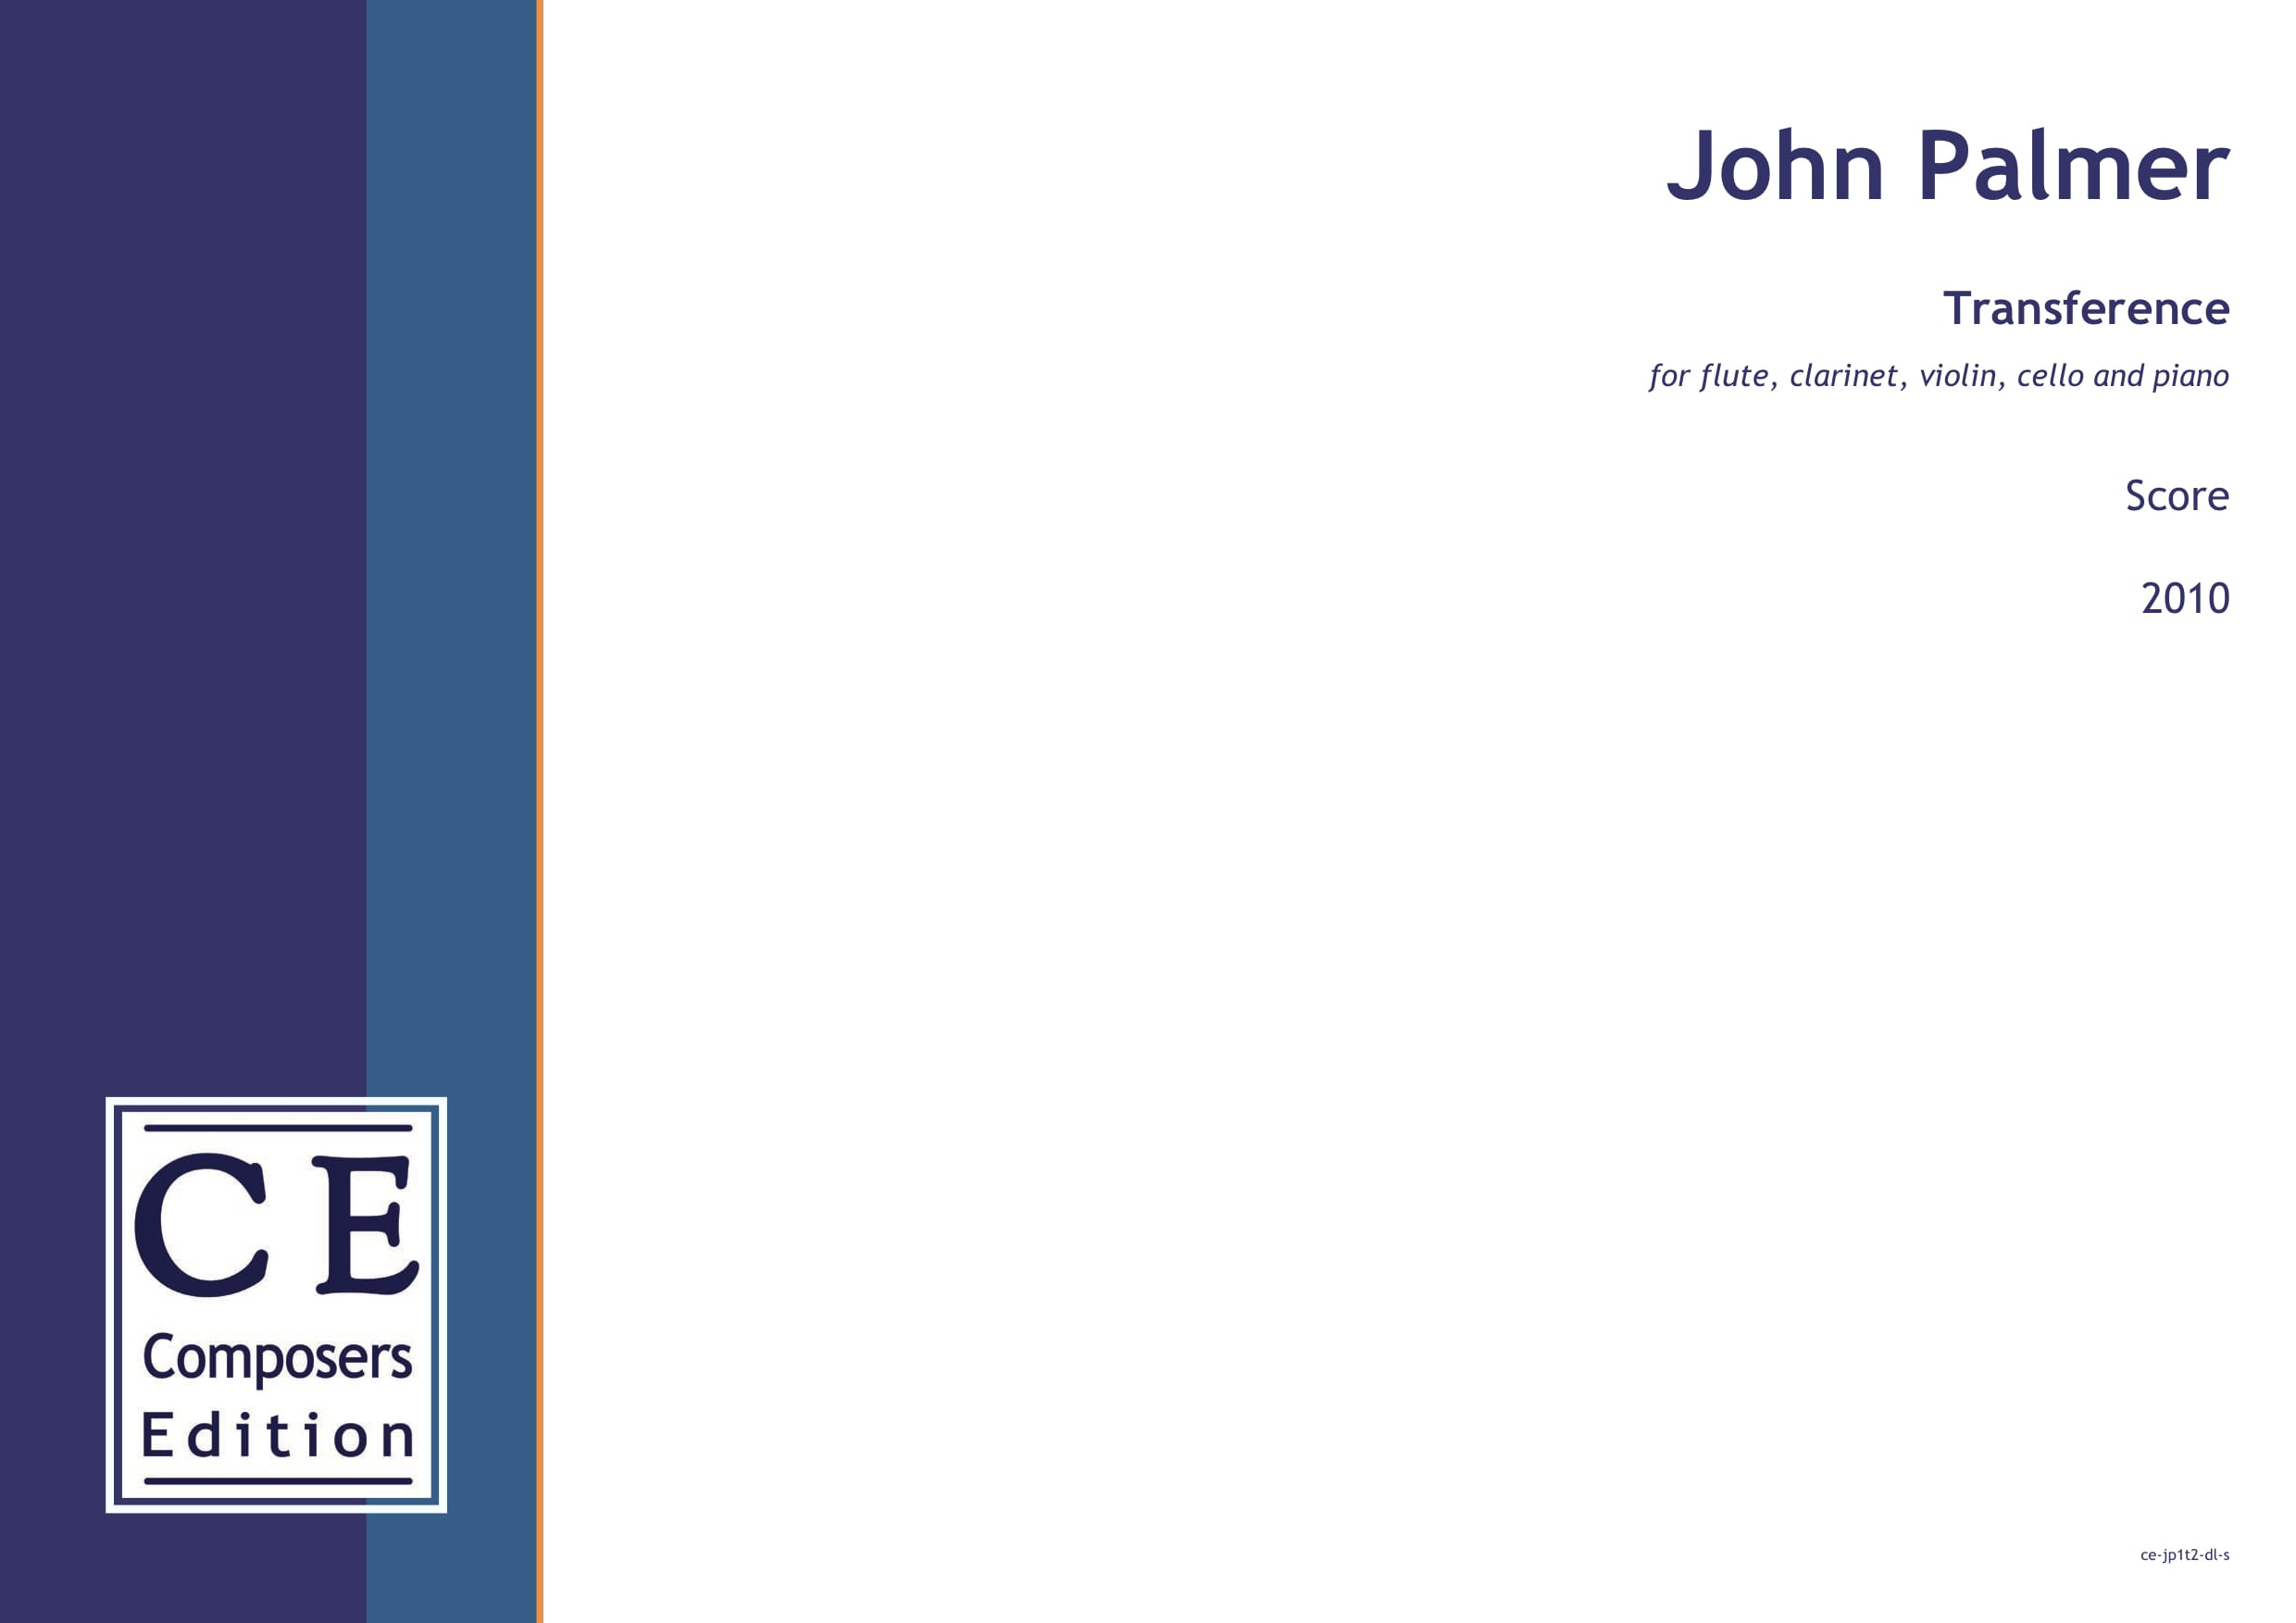 John Palmer: Transference for flute, clarinet, violin, cello and piano